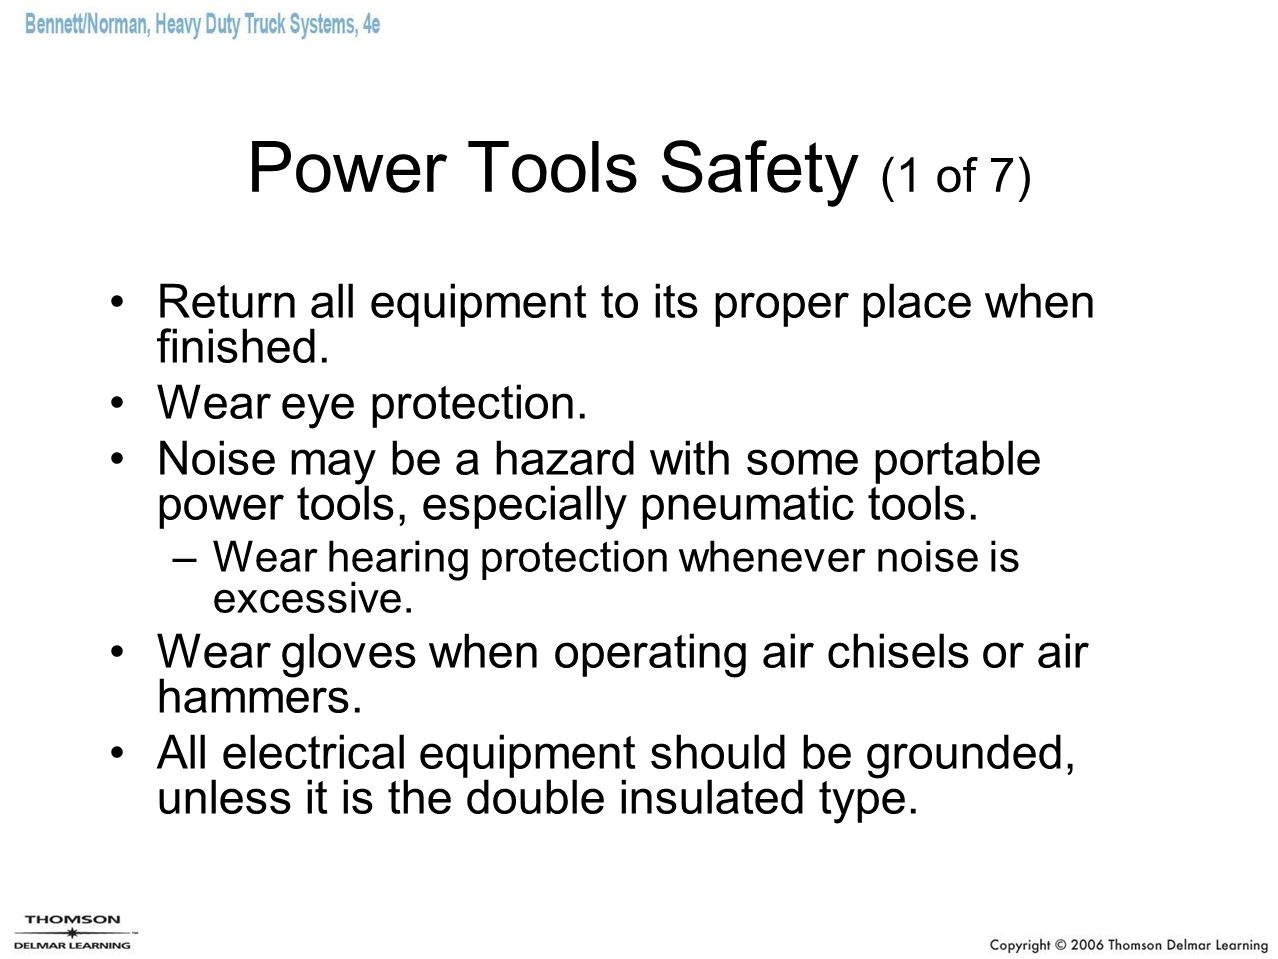 Power Tools Safety (1 of 7)